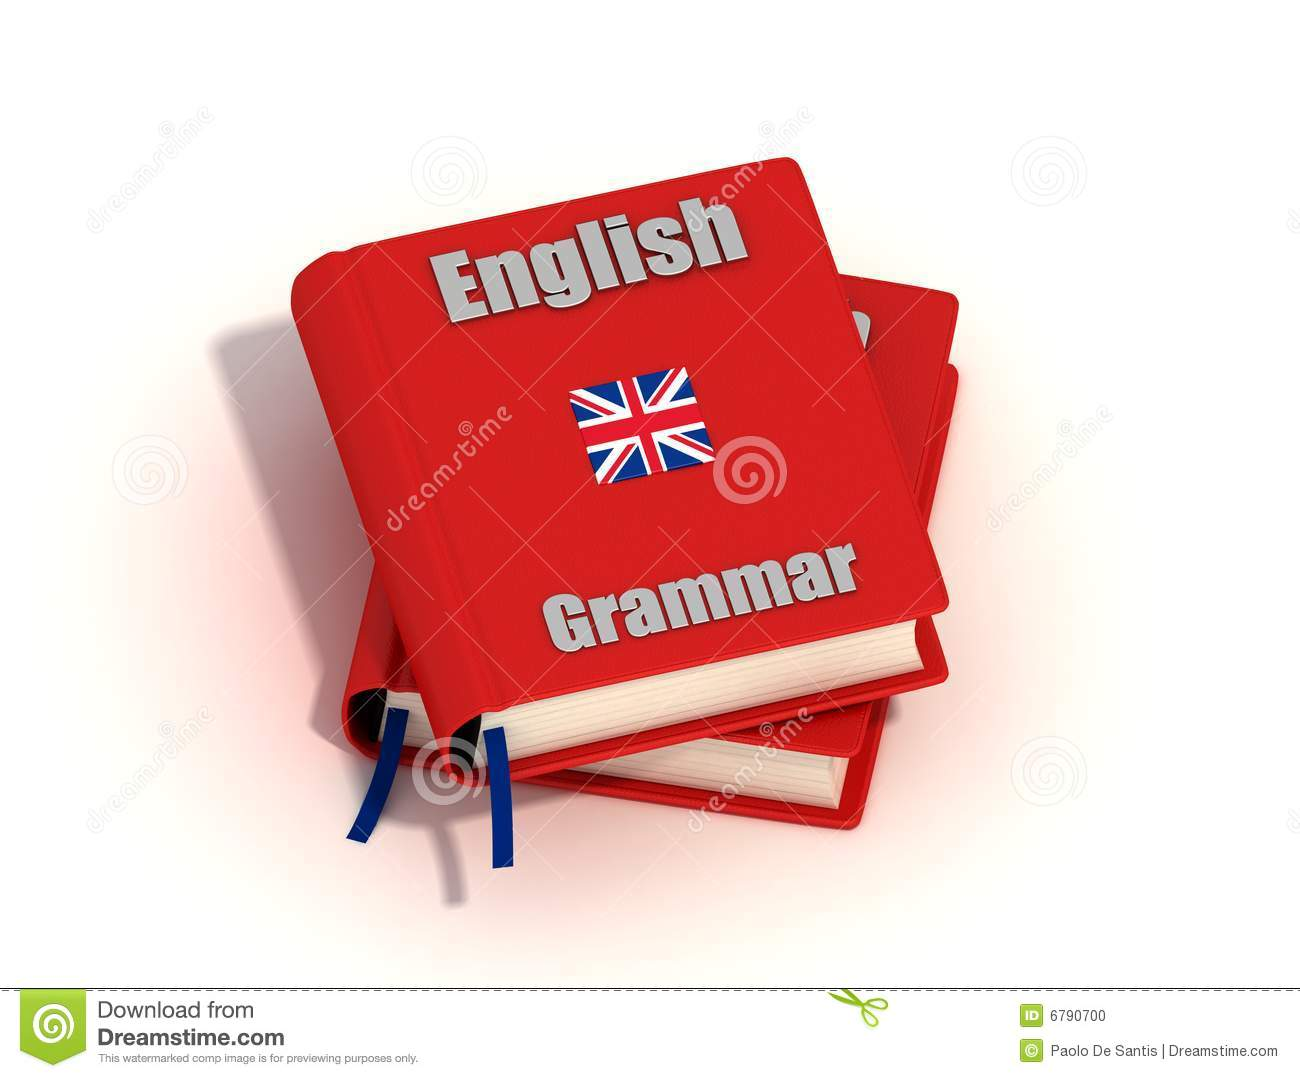 english-grammar-6790700